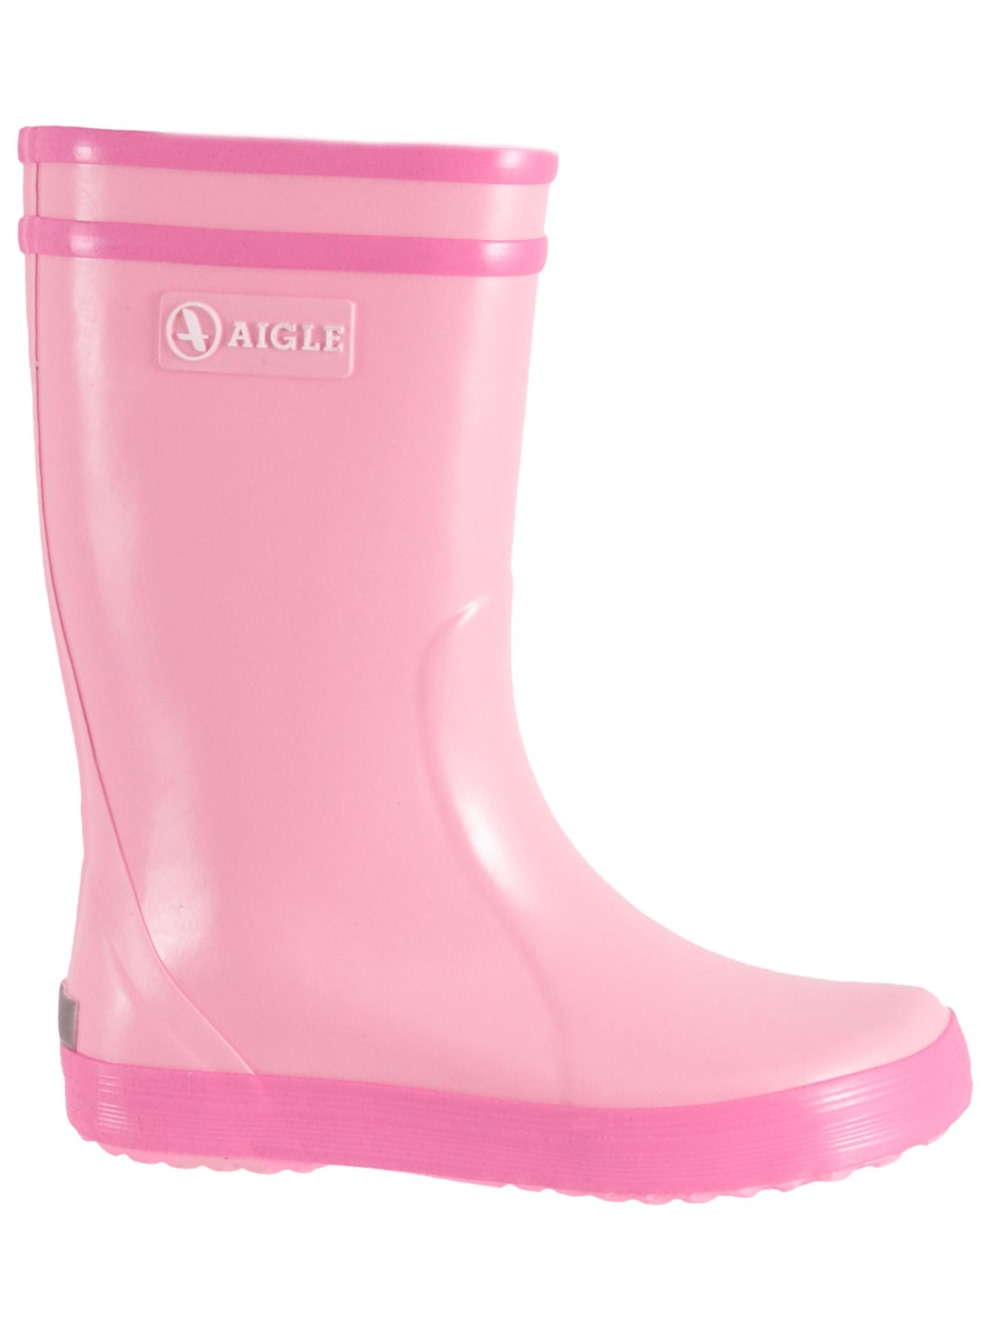 Aigle Lollypop Childrens Wellies - Pink